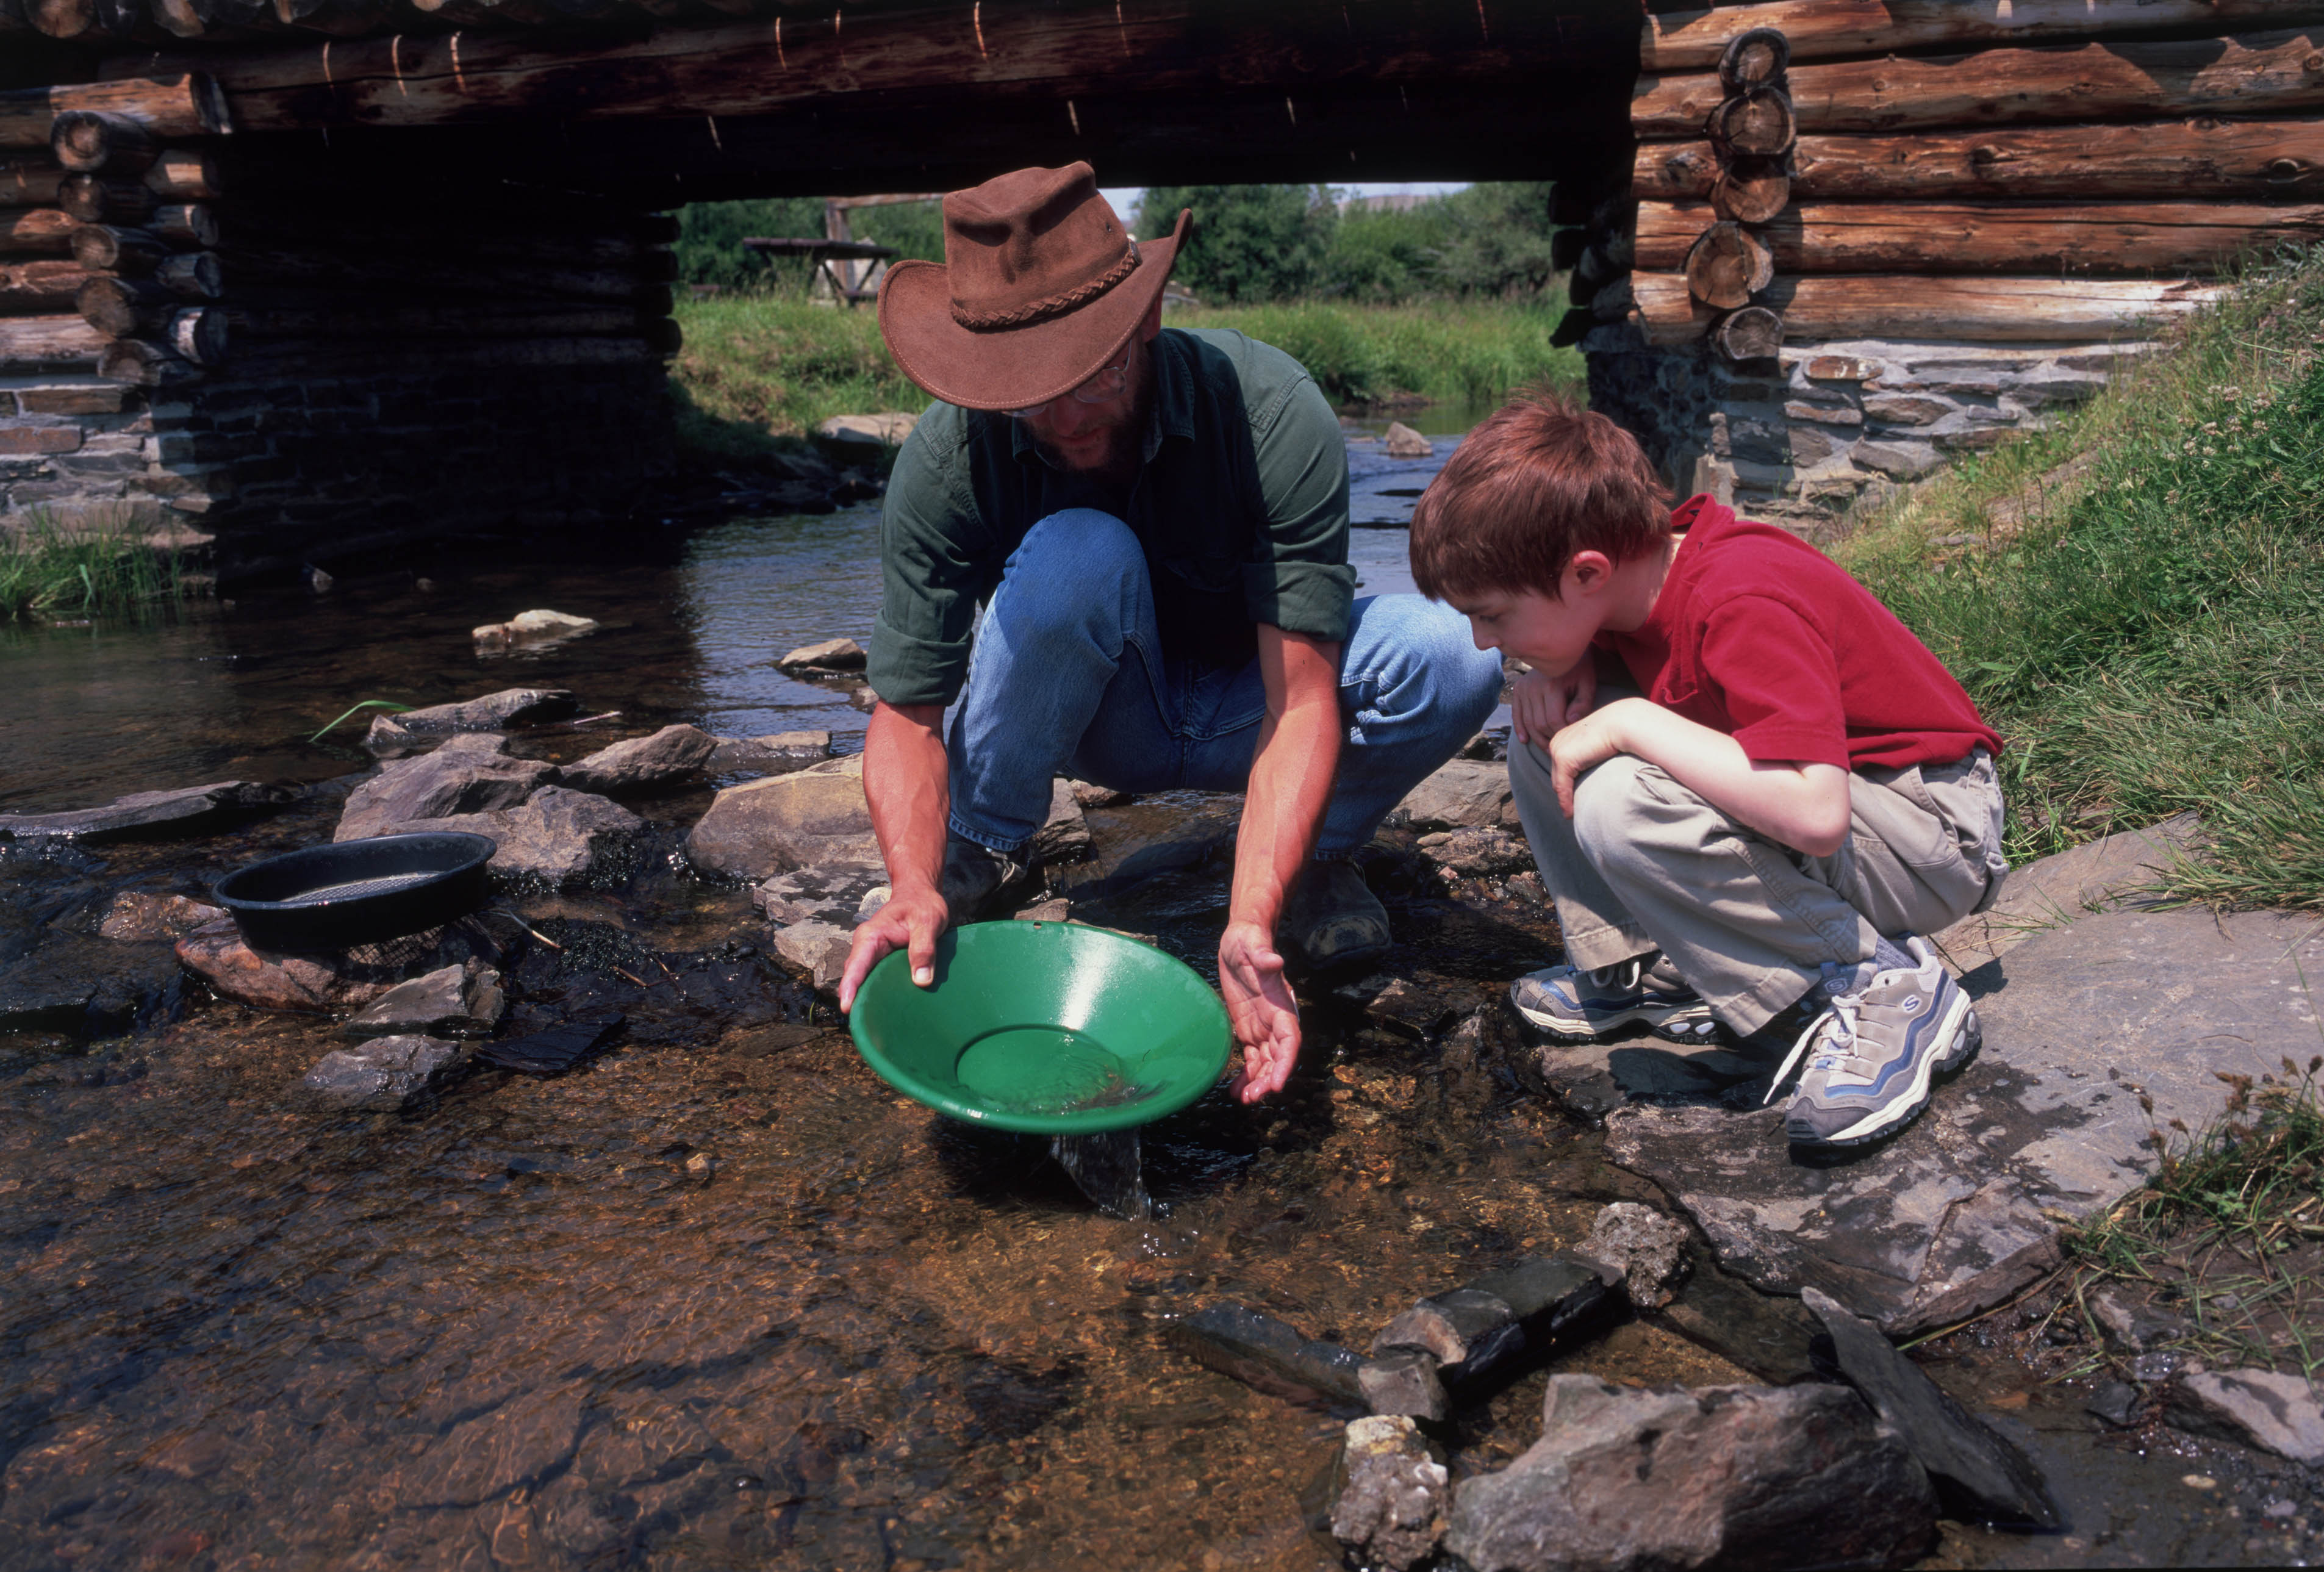 Panning for Gold, South Pass City